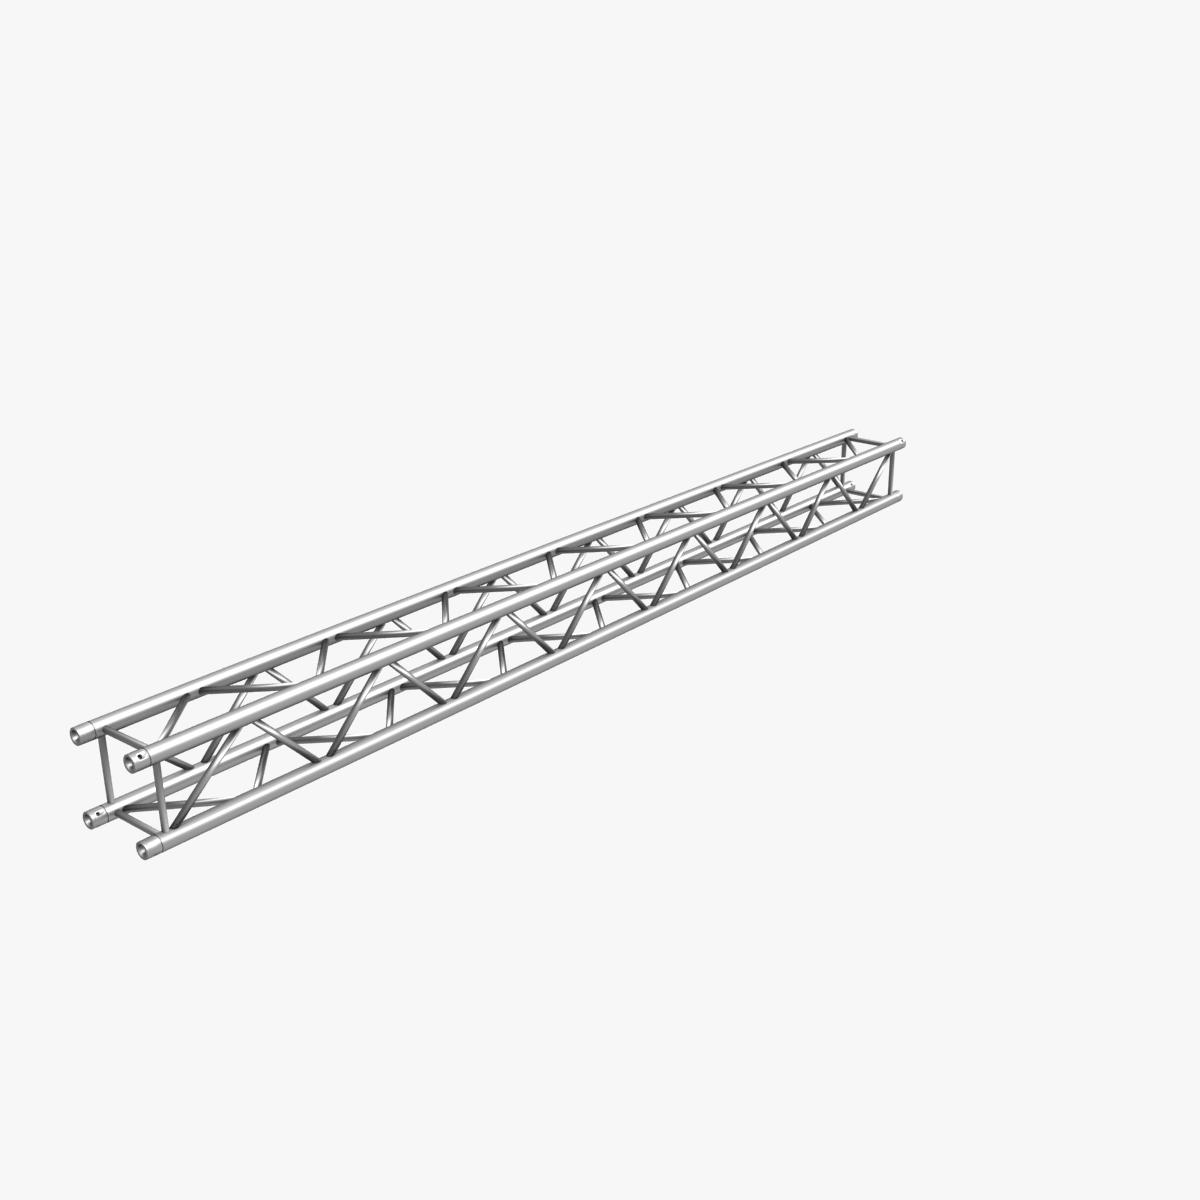 square truss standard (collection 24 modular) 3d model 3ds max dxf fbx c4d dae  texture obj 216338